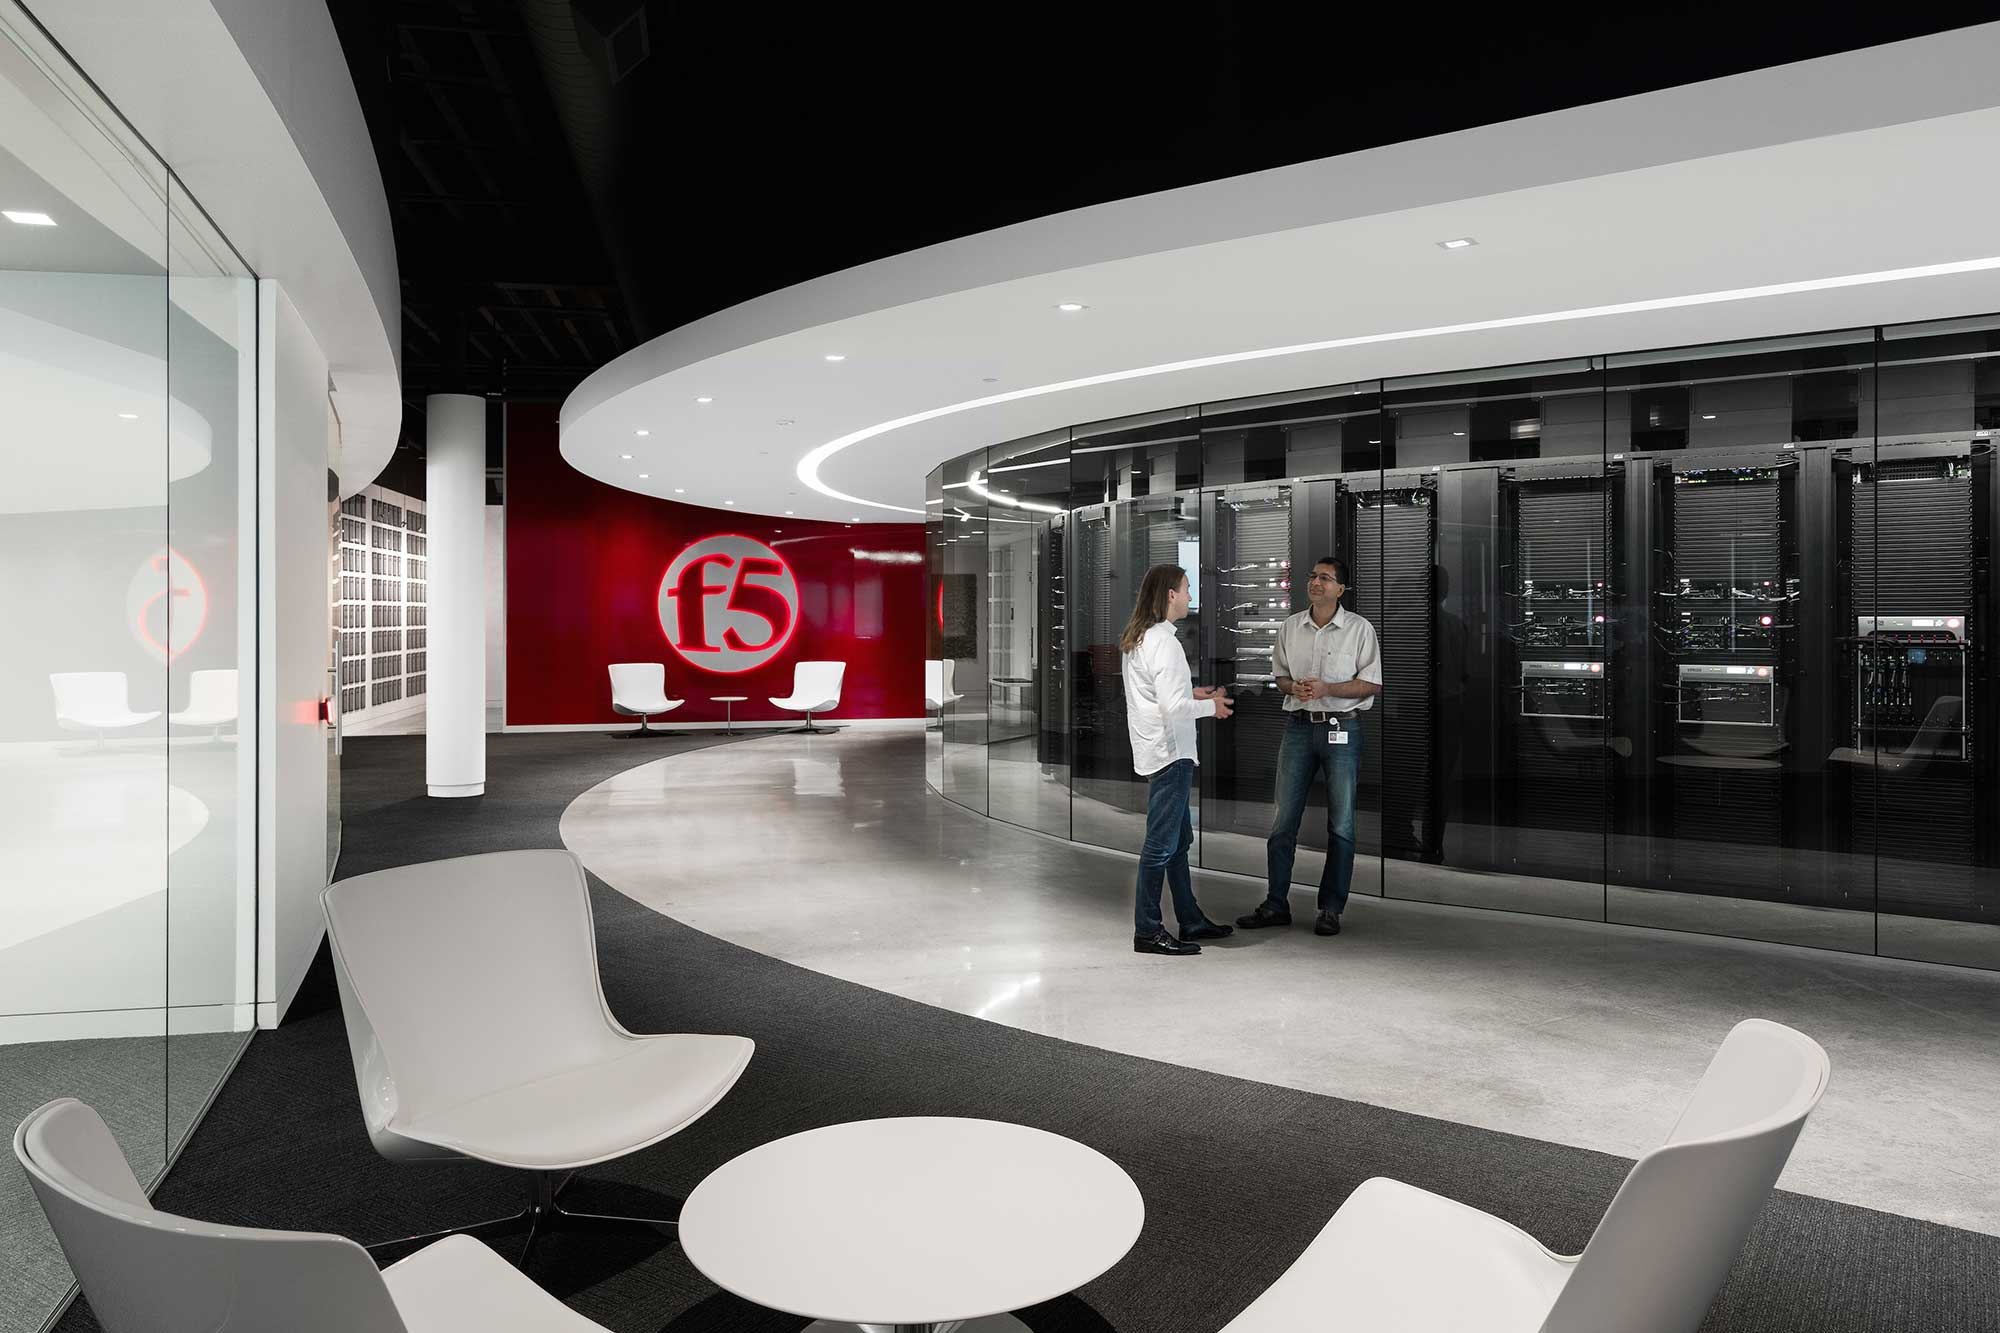 Two F5 Networks employees inside the Customer Service Center